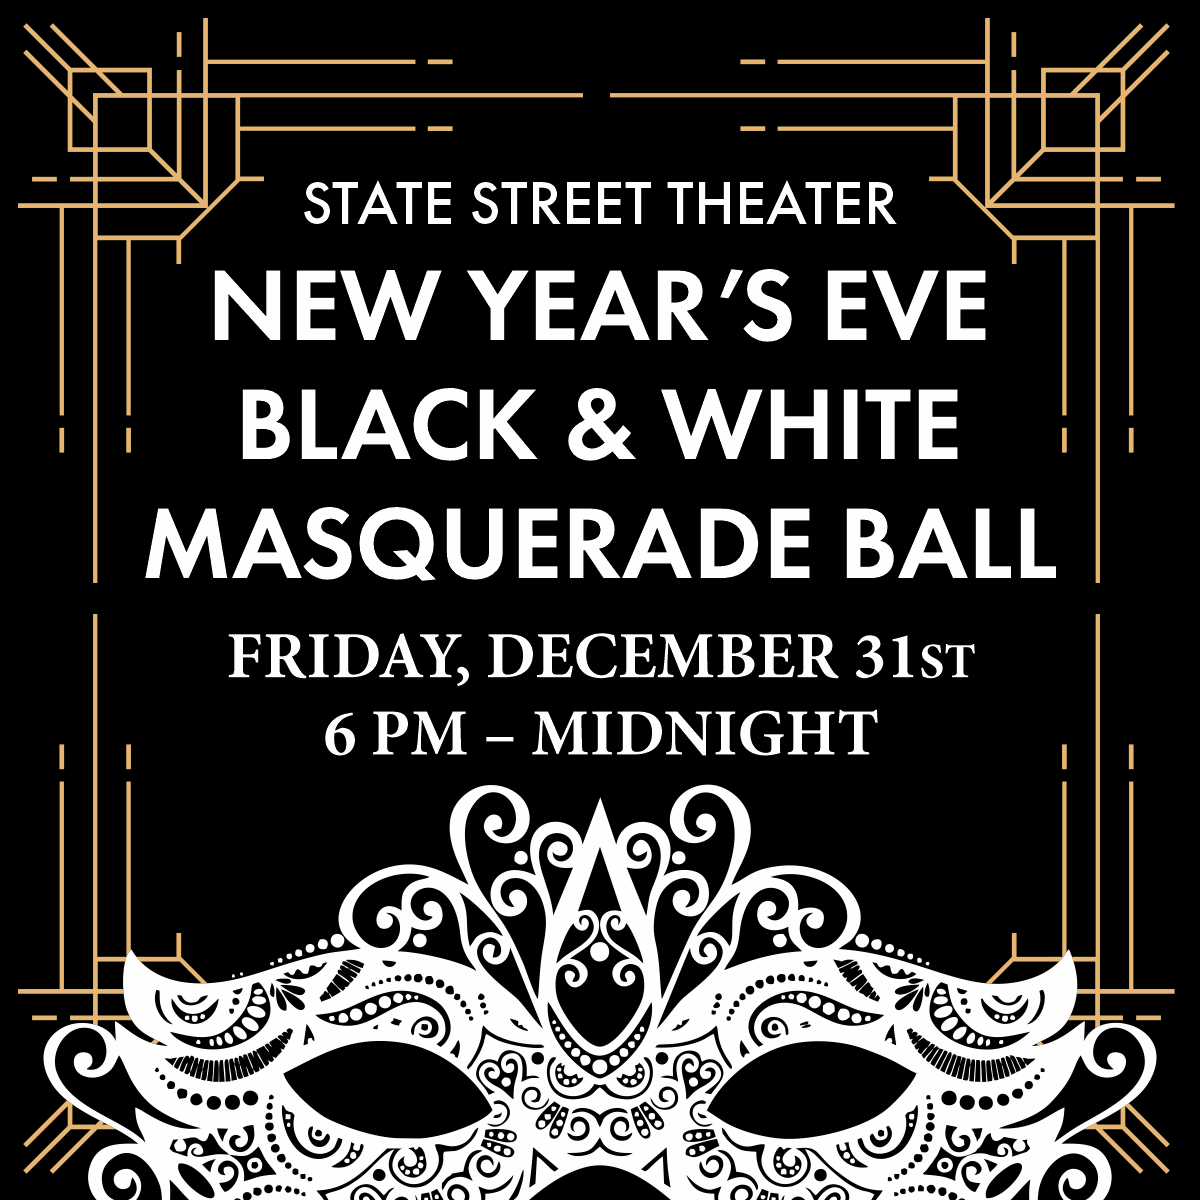 New Year's Eve Black & White Ball at State Street Theater Co. Friday, December 31 from 6 pm - midnight